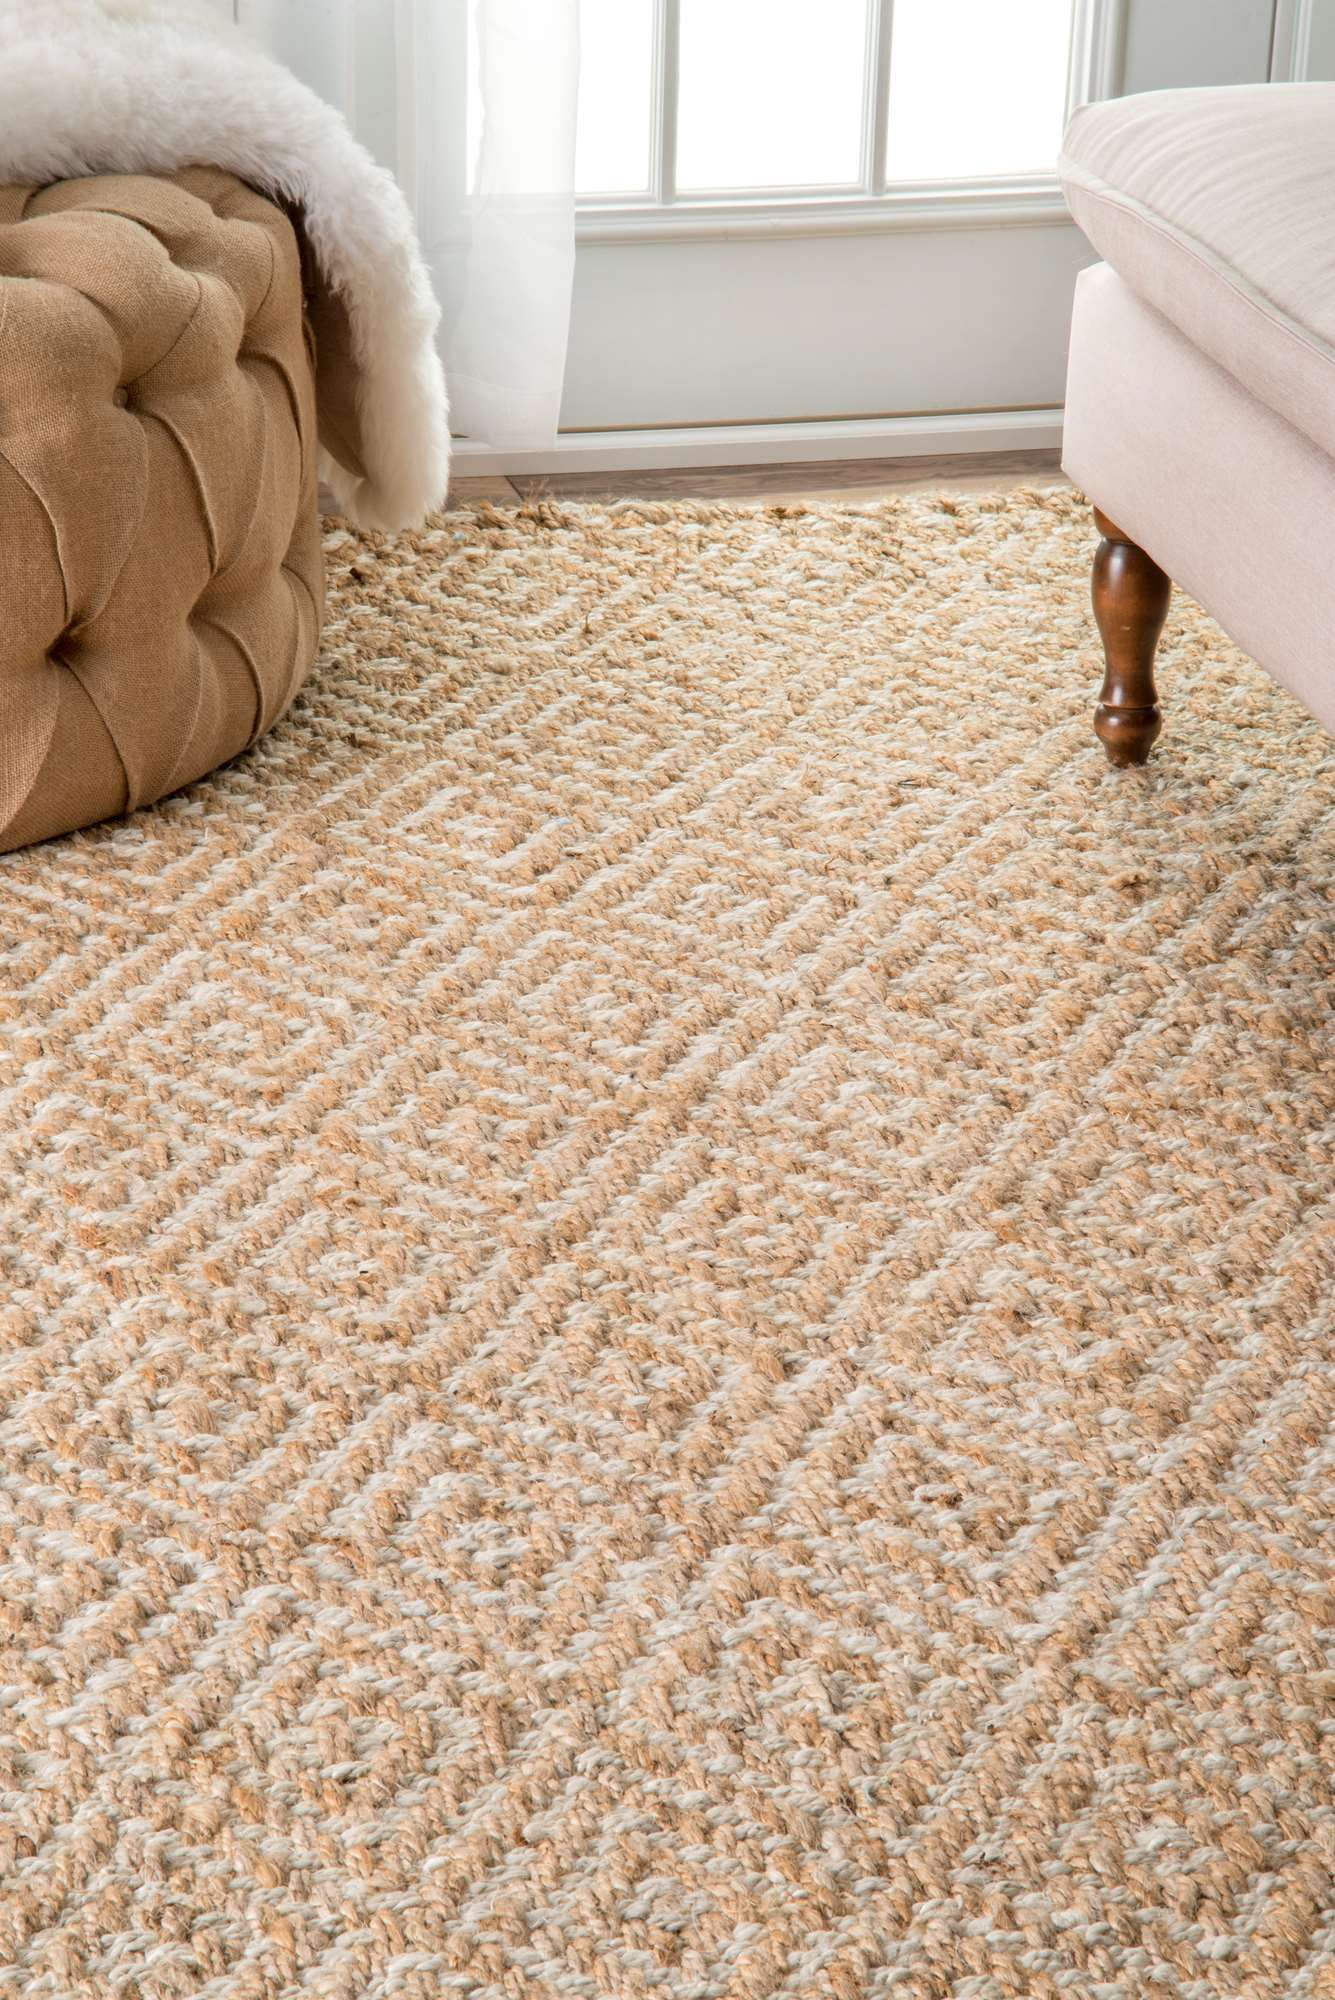 Earthy Organic And Handwoven This Natural Fiber Rug Will Bring A Rustic Charm To